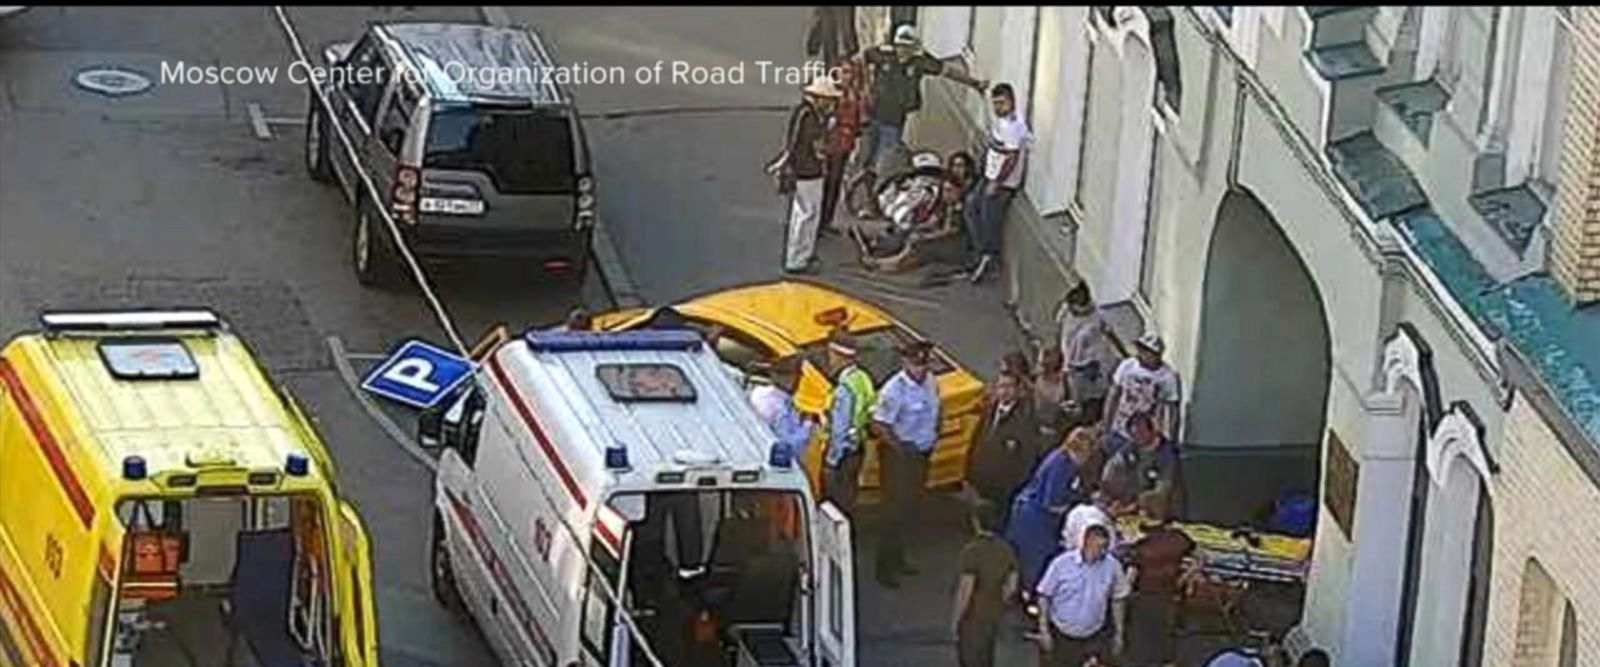 VIDEO: Speeding taxi runs into crowd of tourists on Moscow sidewalk